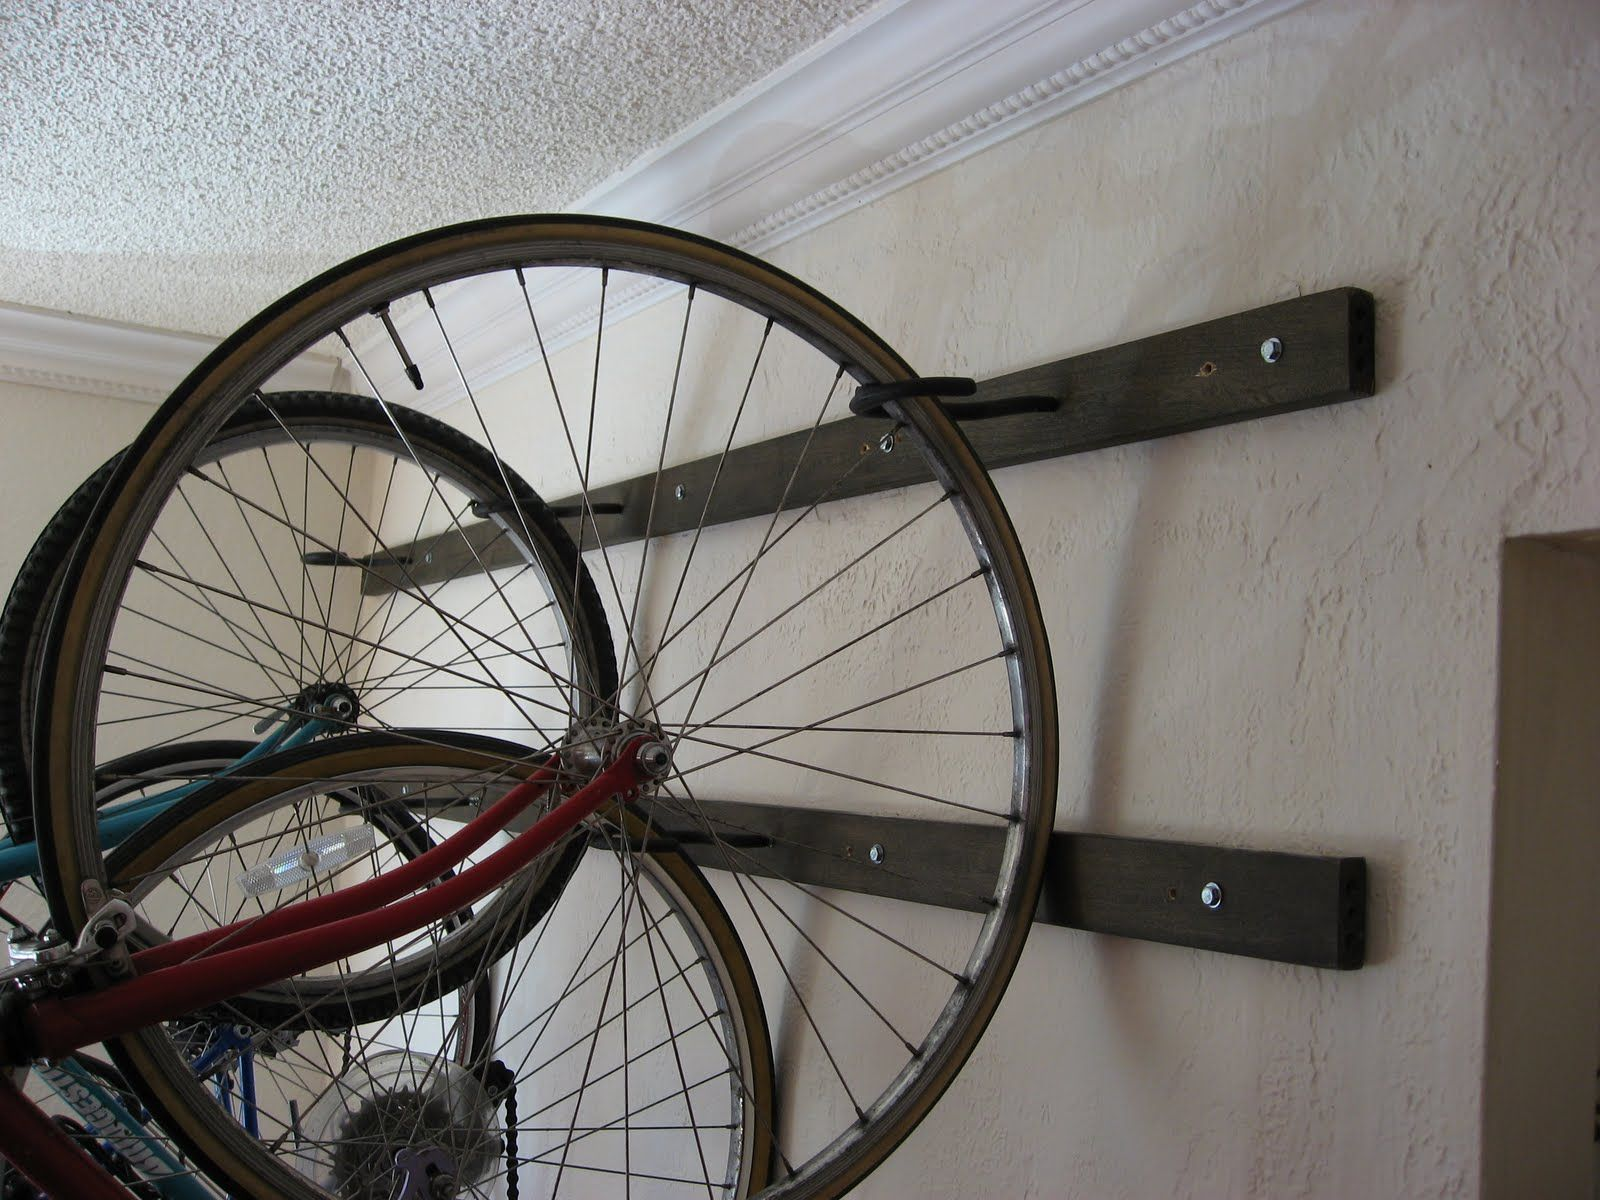 Girl On Bike Post 100 My Brand New Homemade Wall Hanging Bike Rack Hanging Bike Rack Bike Rack Wall Bike Rack